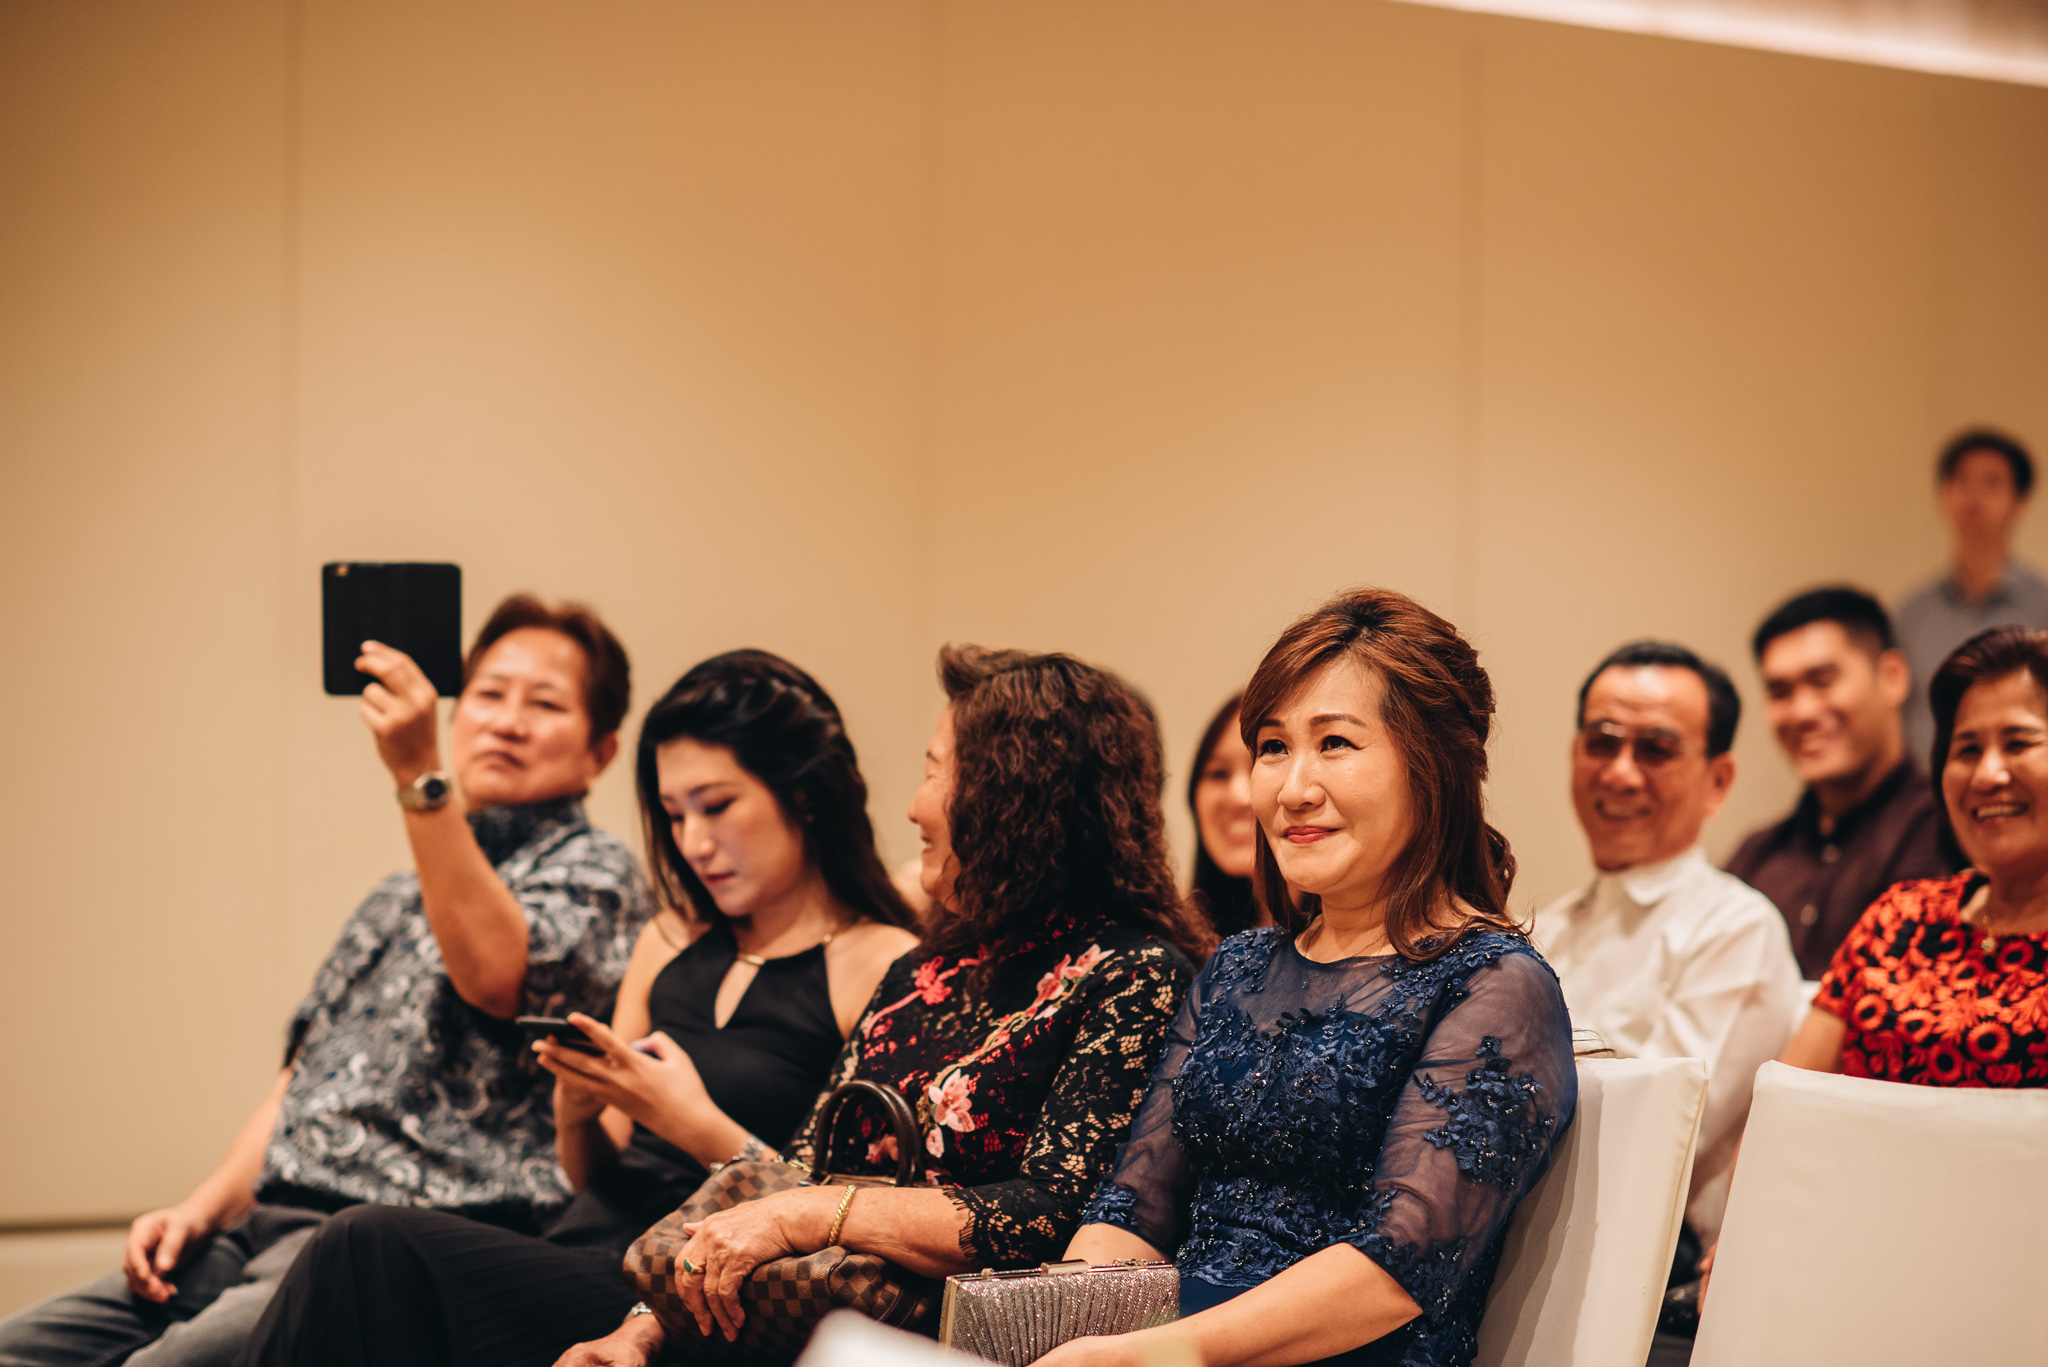 Cindy & Kevin Wedding Day Highlights (resized for sharing) - 155.jpg